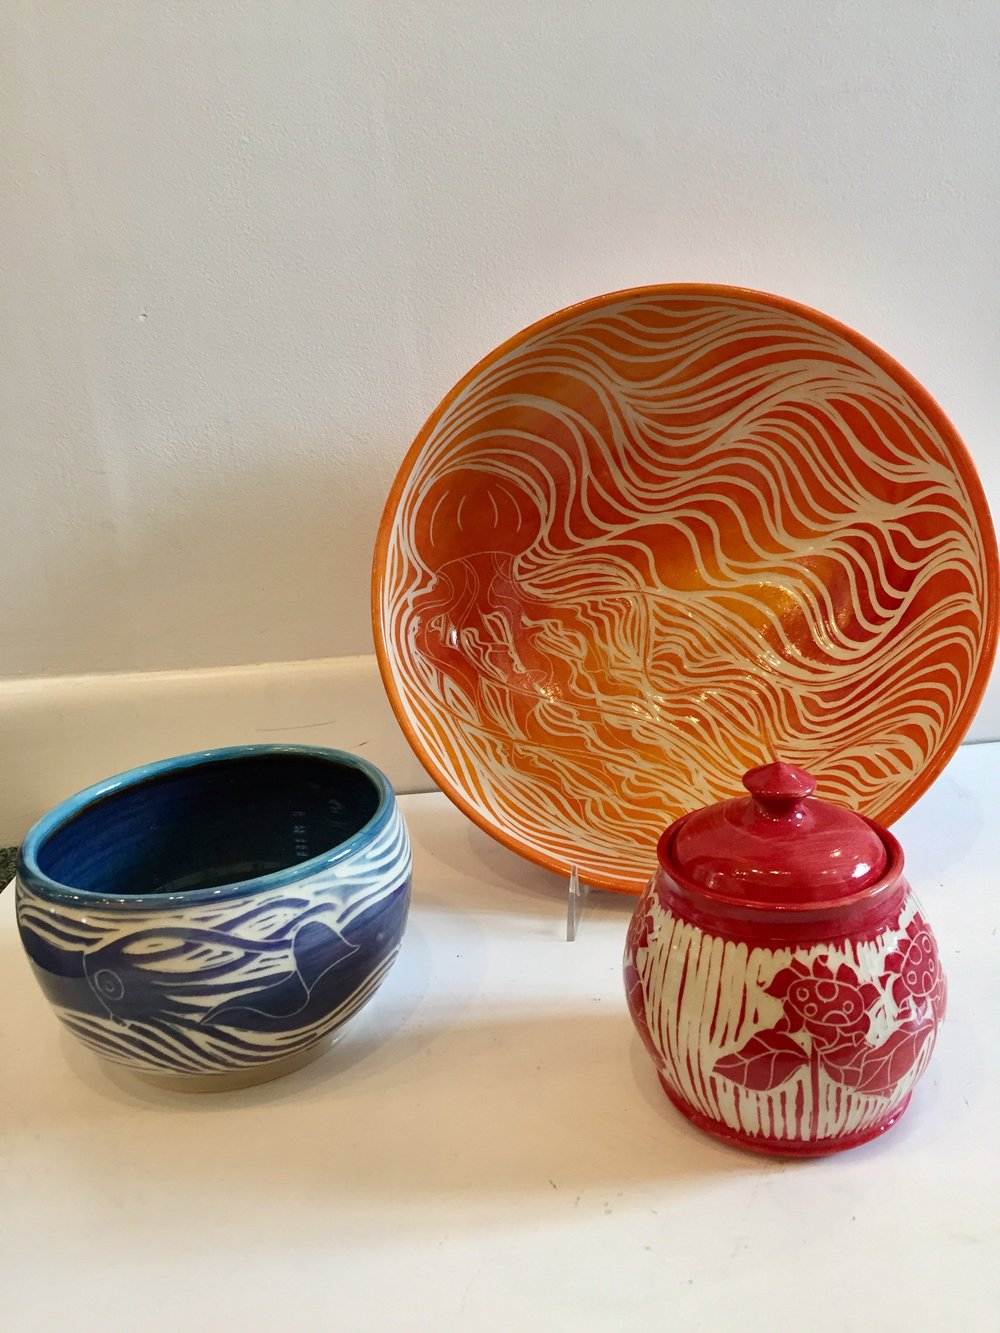 - Sarah Caruso CeramicsSarah's work has been inspired by her own back yard here on the Cape.  As she carves images of plants and saline using the sgrafitto technique, the beauty of her colors and skills capture your attention.  She creates bowls, mugs and various other beautiful pieces for your use and enjoyment.